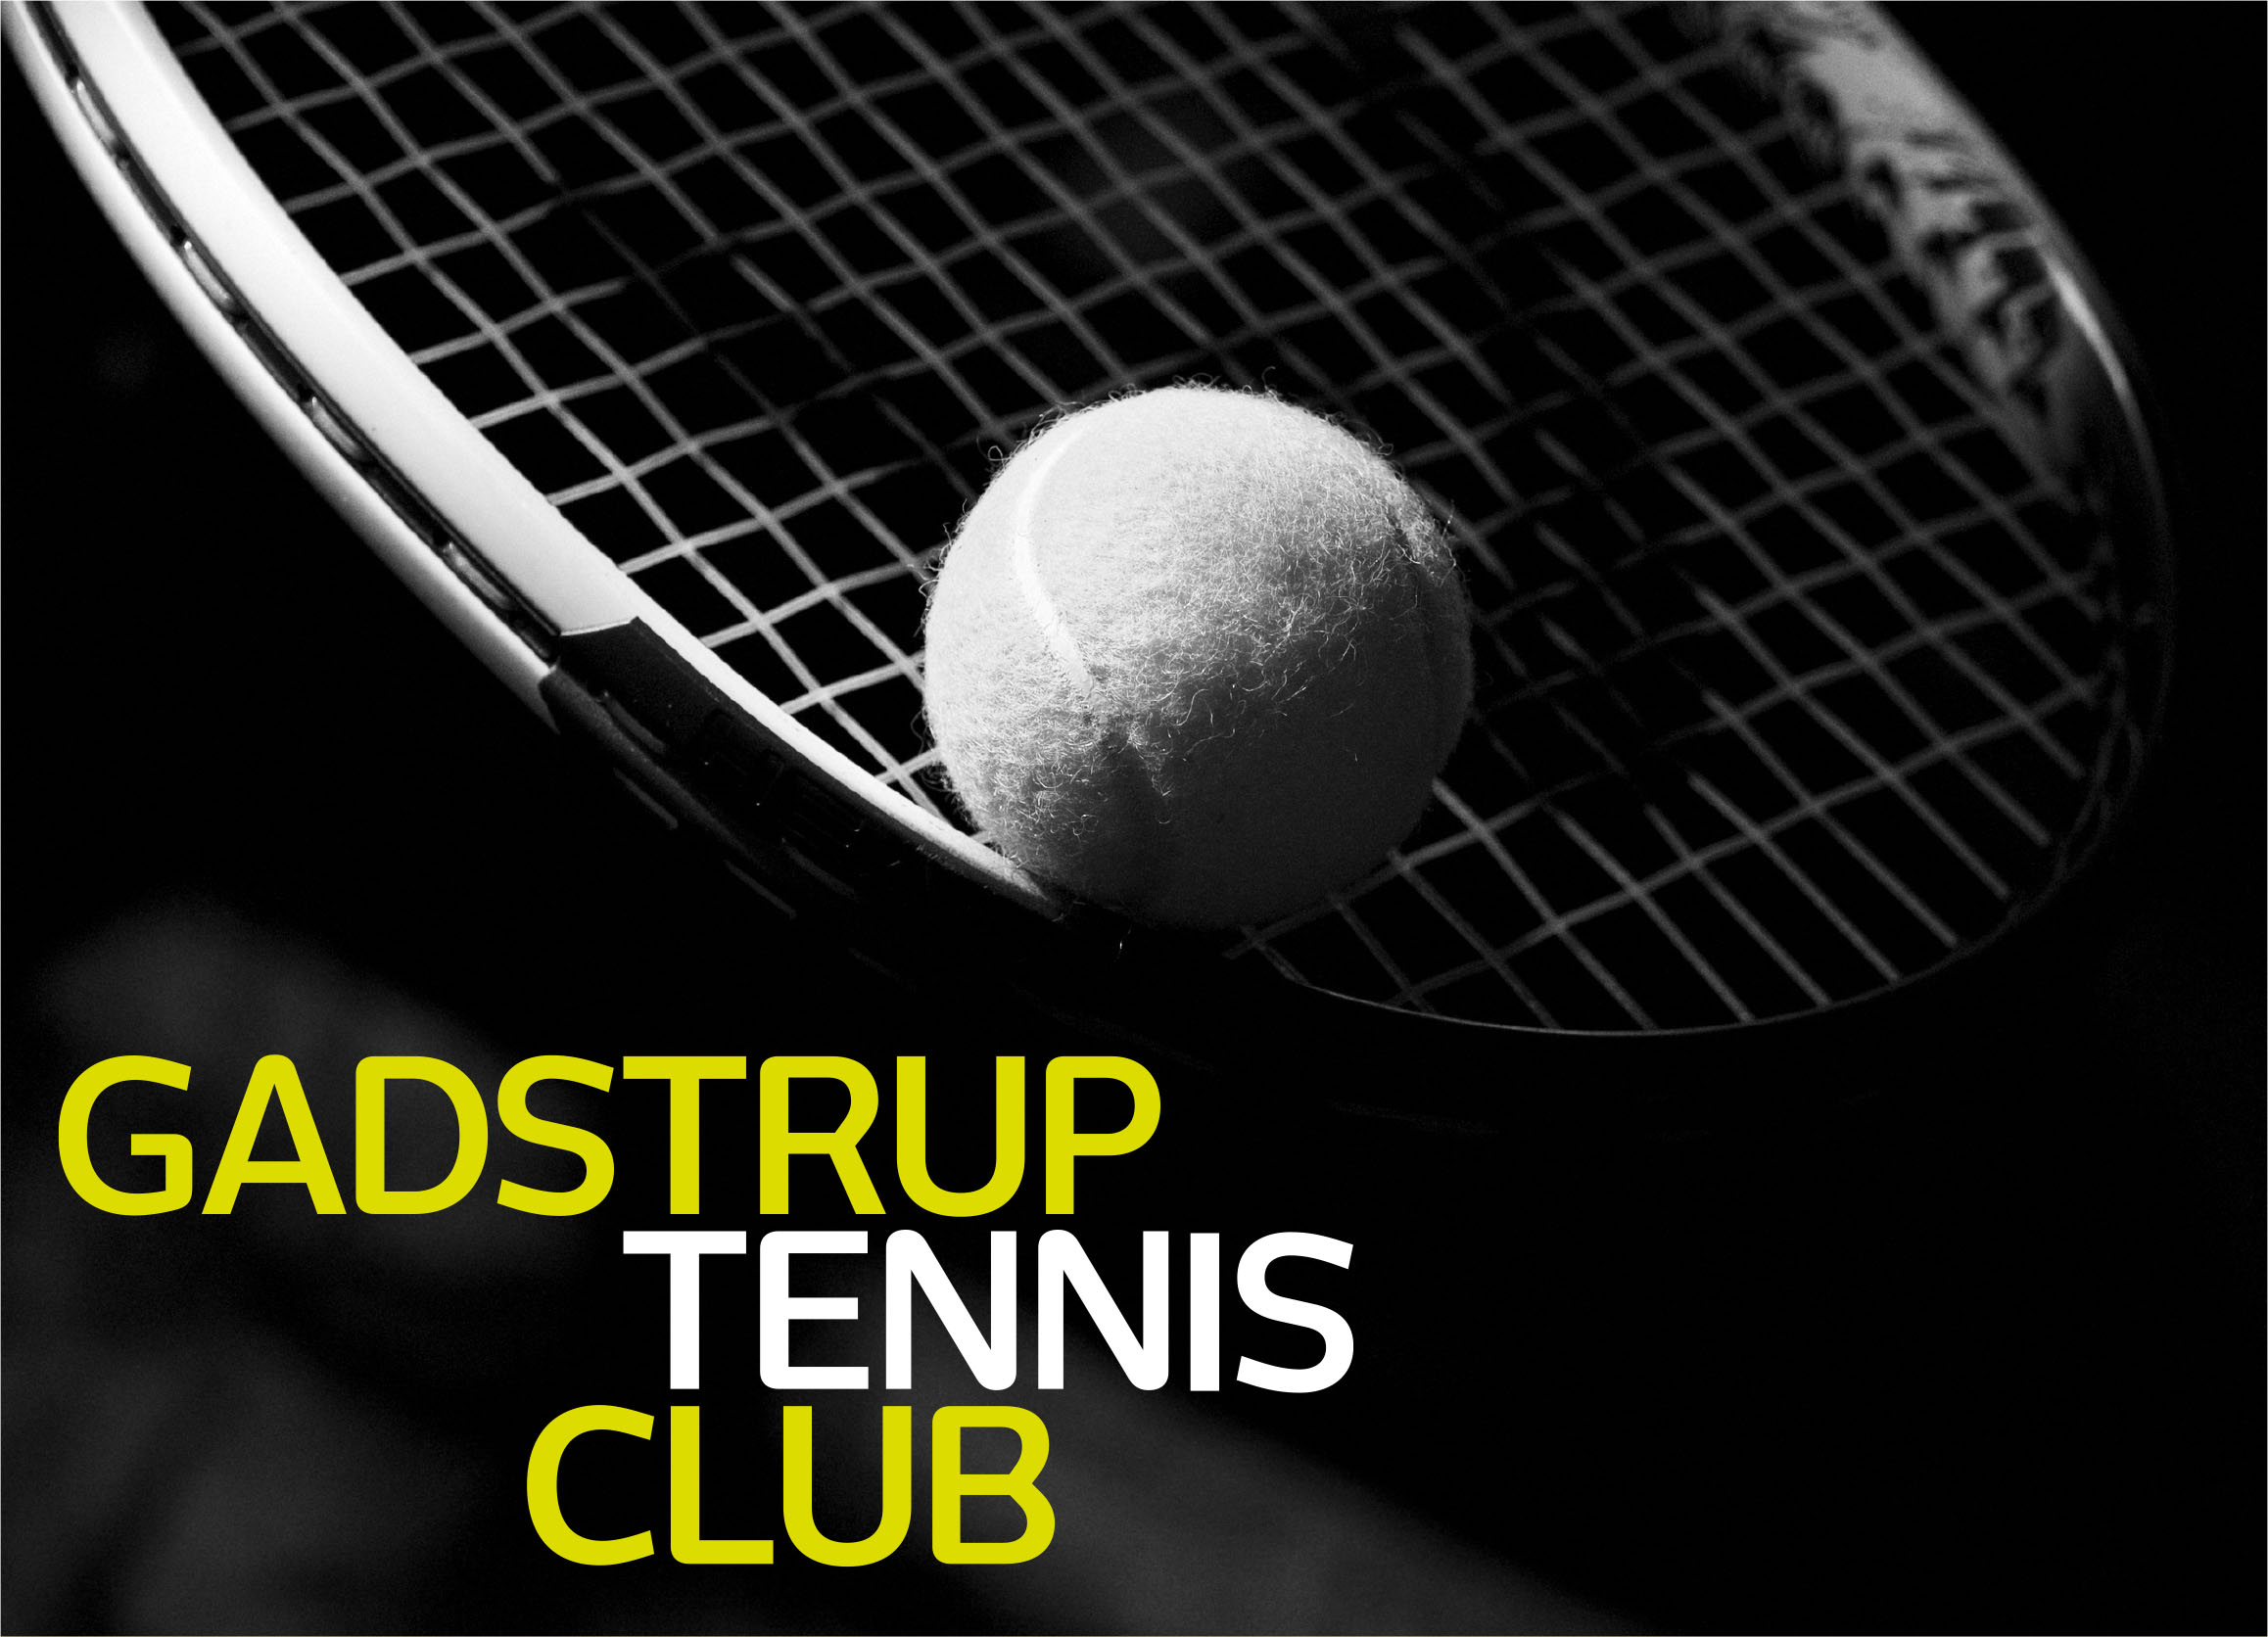 Gadstrup Tennis Club